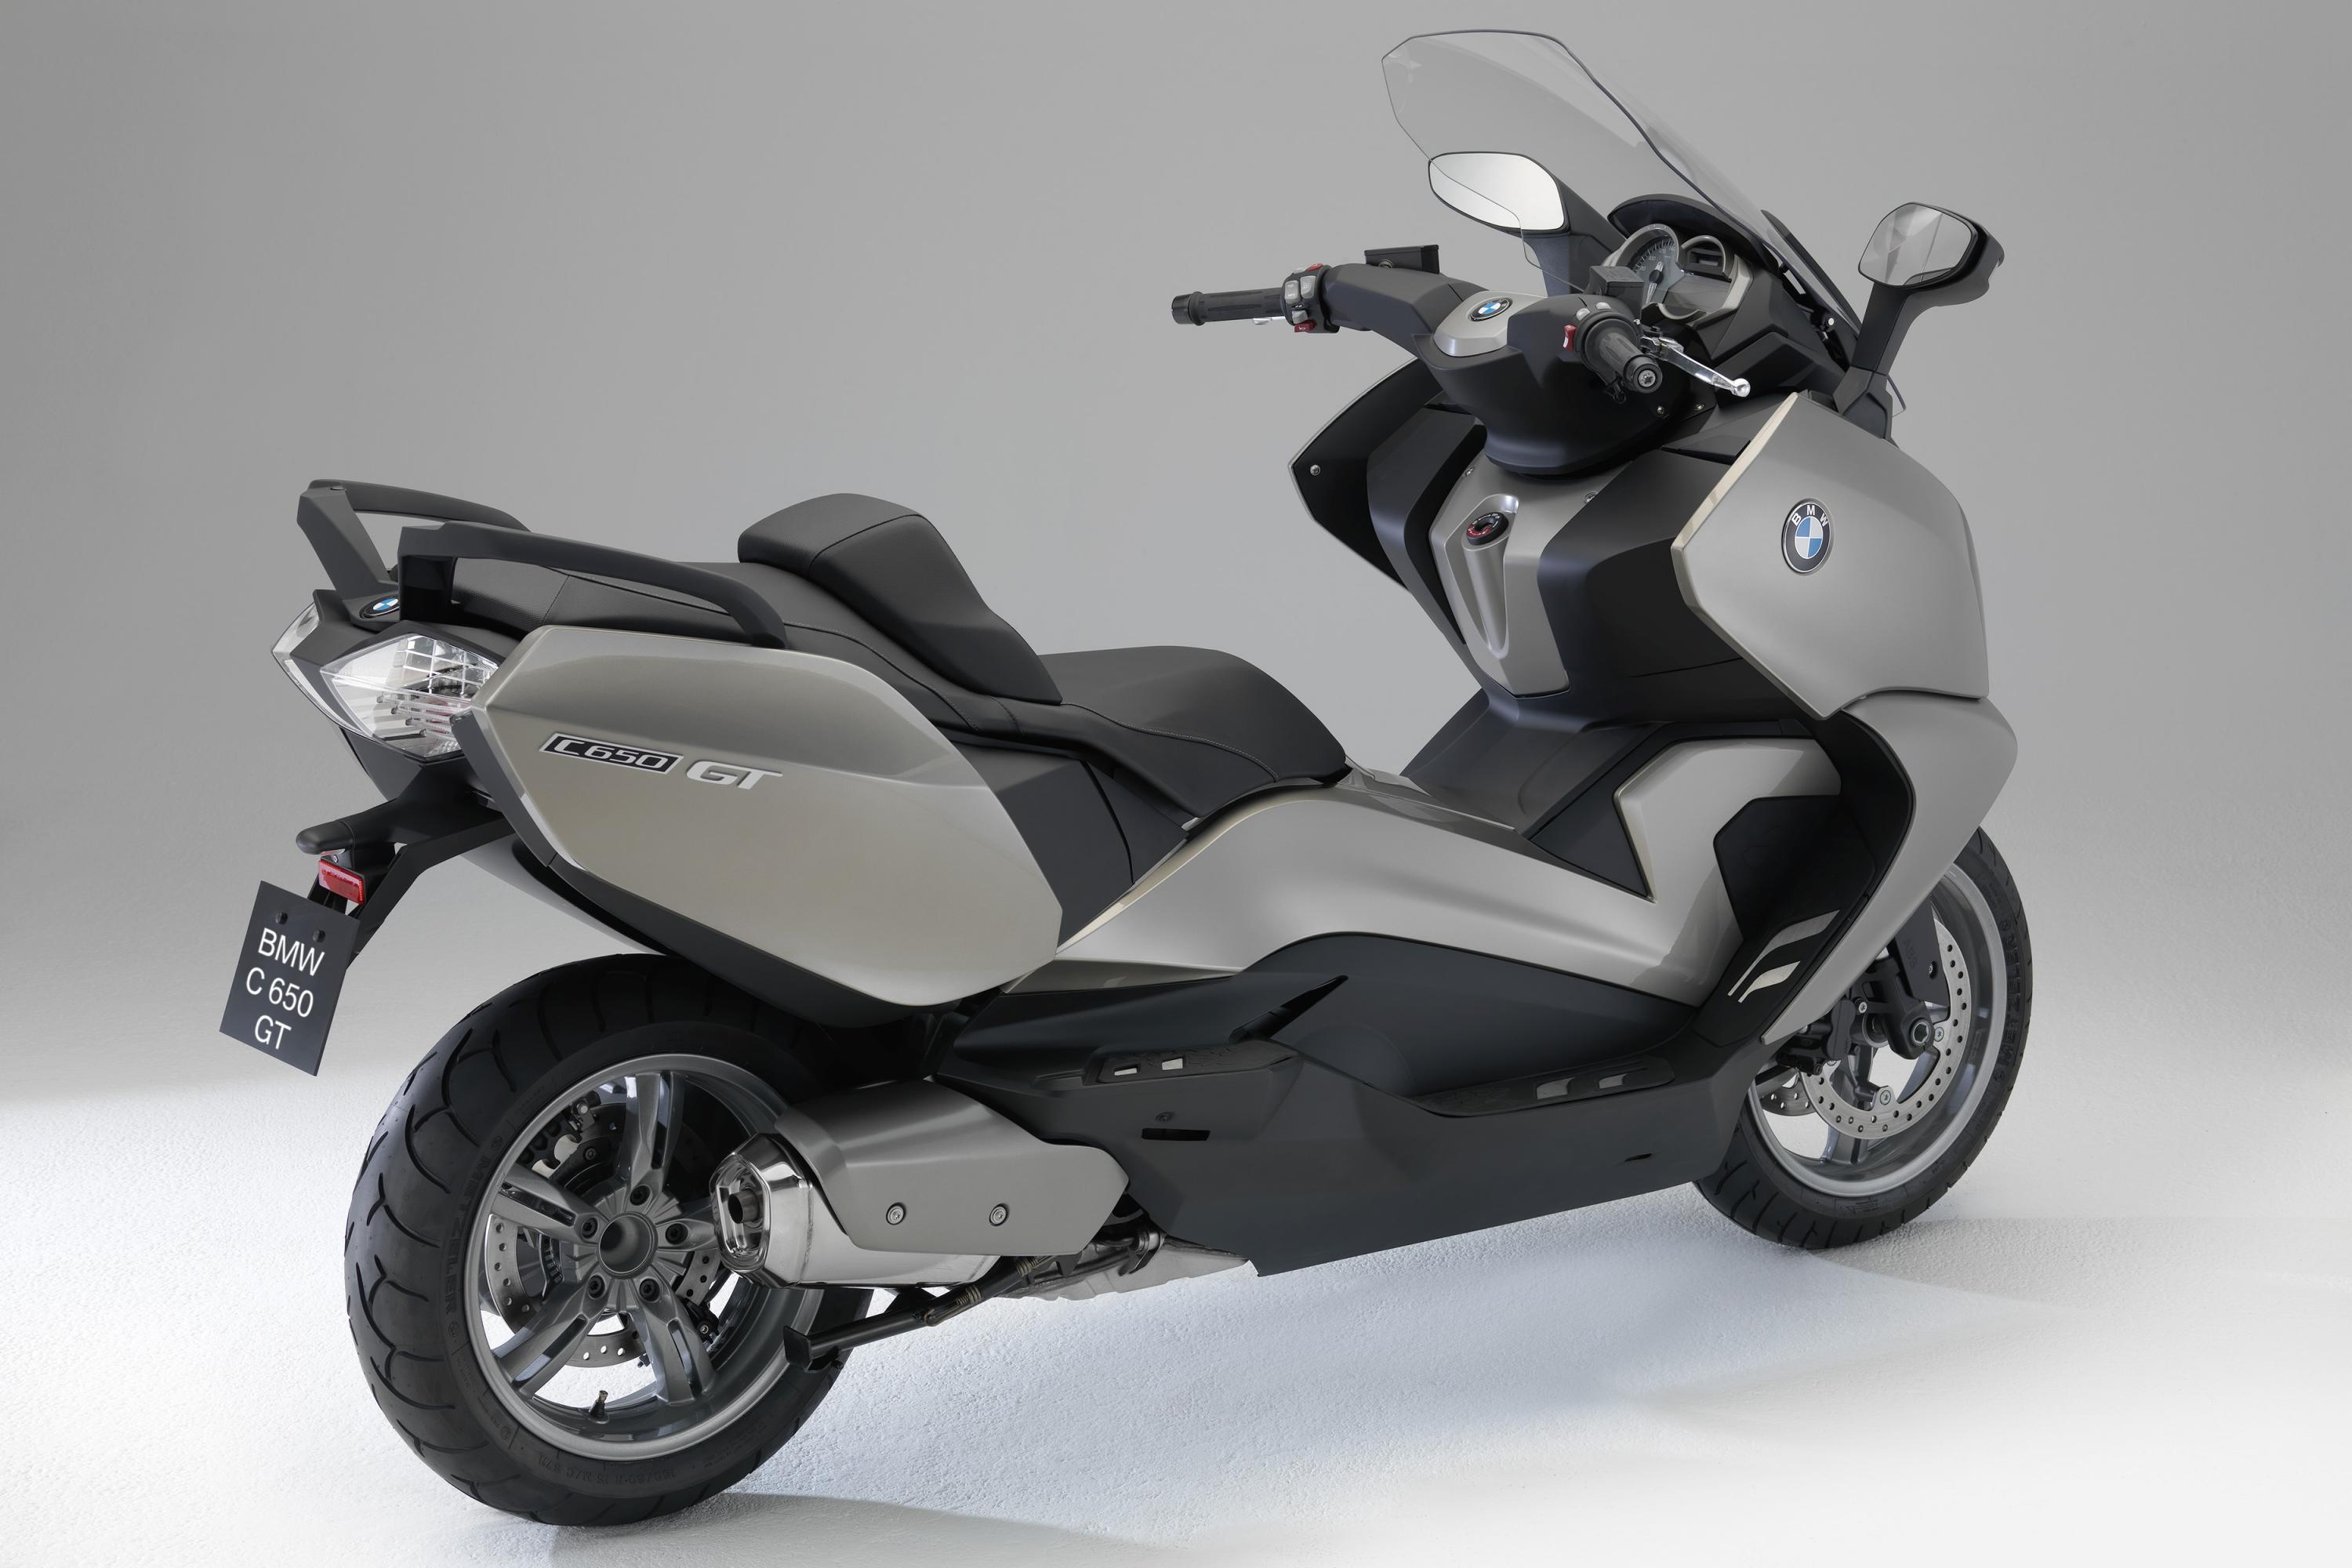 bmw urban mobility c650 gt (2012-2015) for sale & price guide